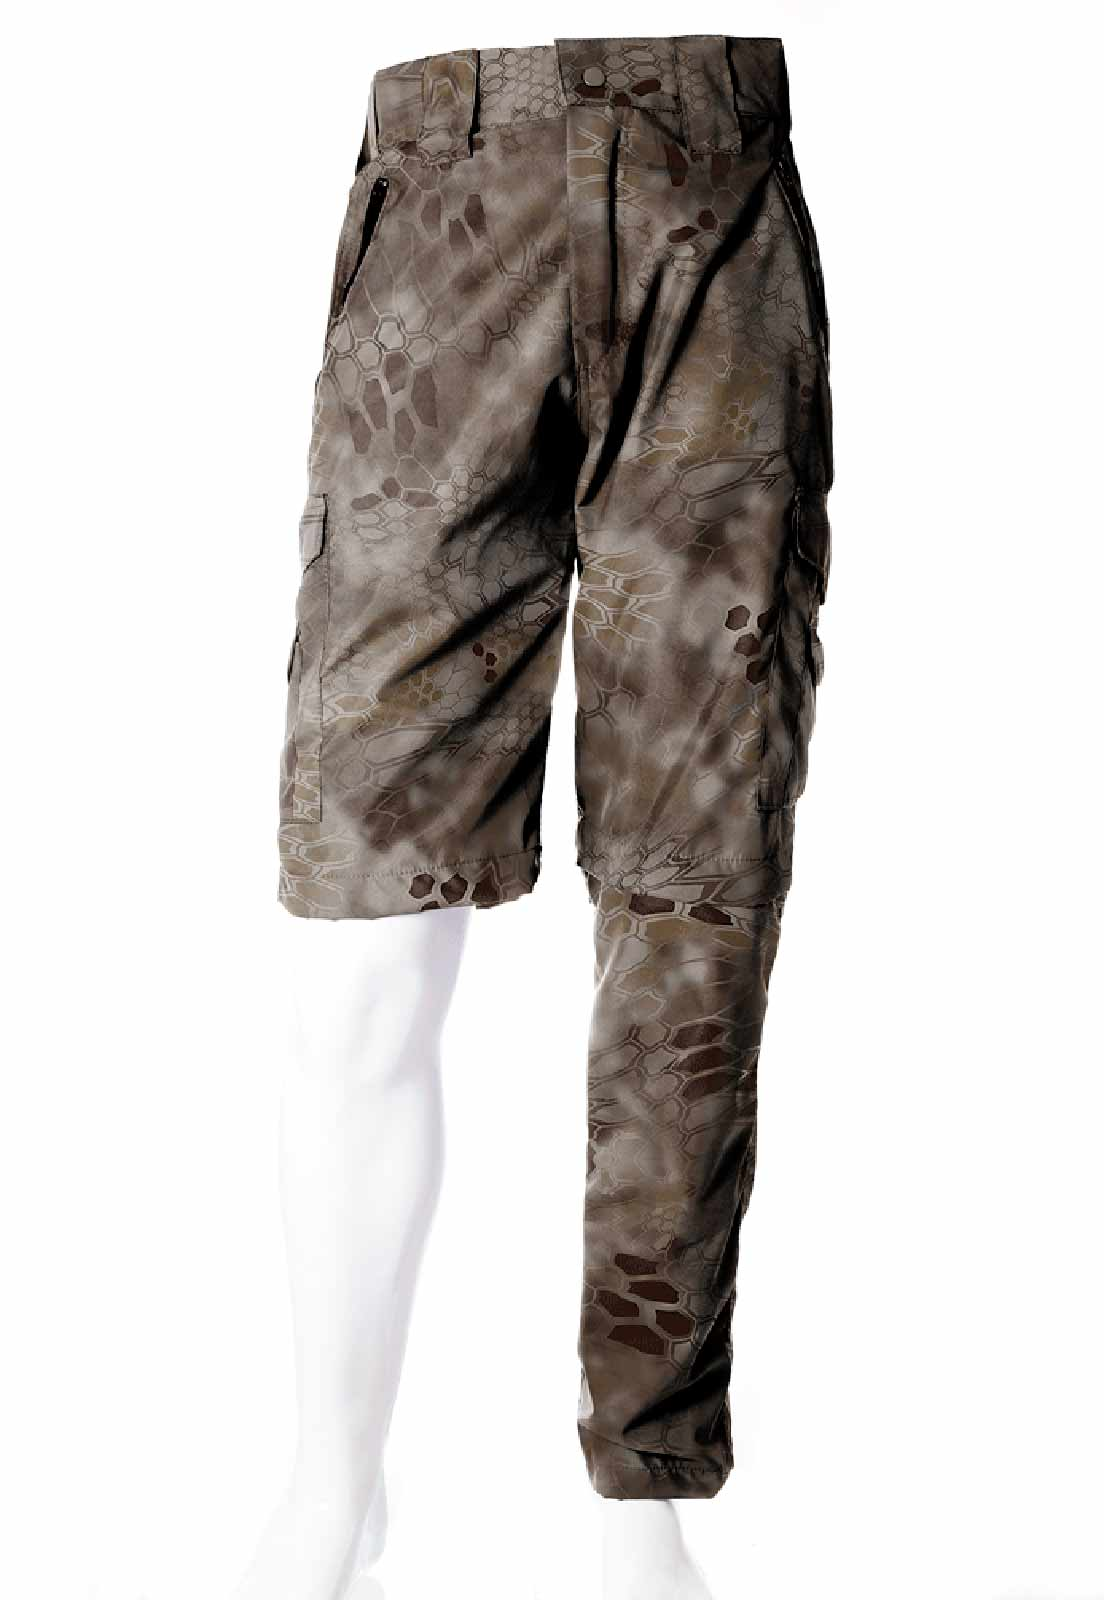 Calça-Bermuda Camuflada Kryptec Nomad UltraLight Masculina  - REAL HUNTER OUTDOORS